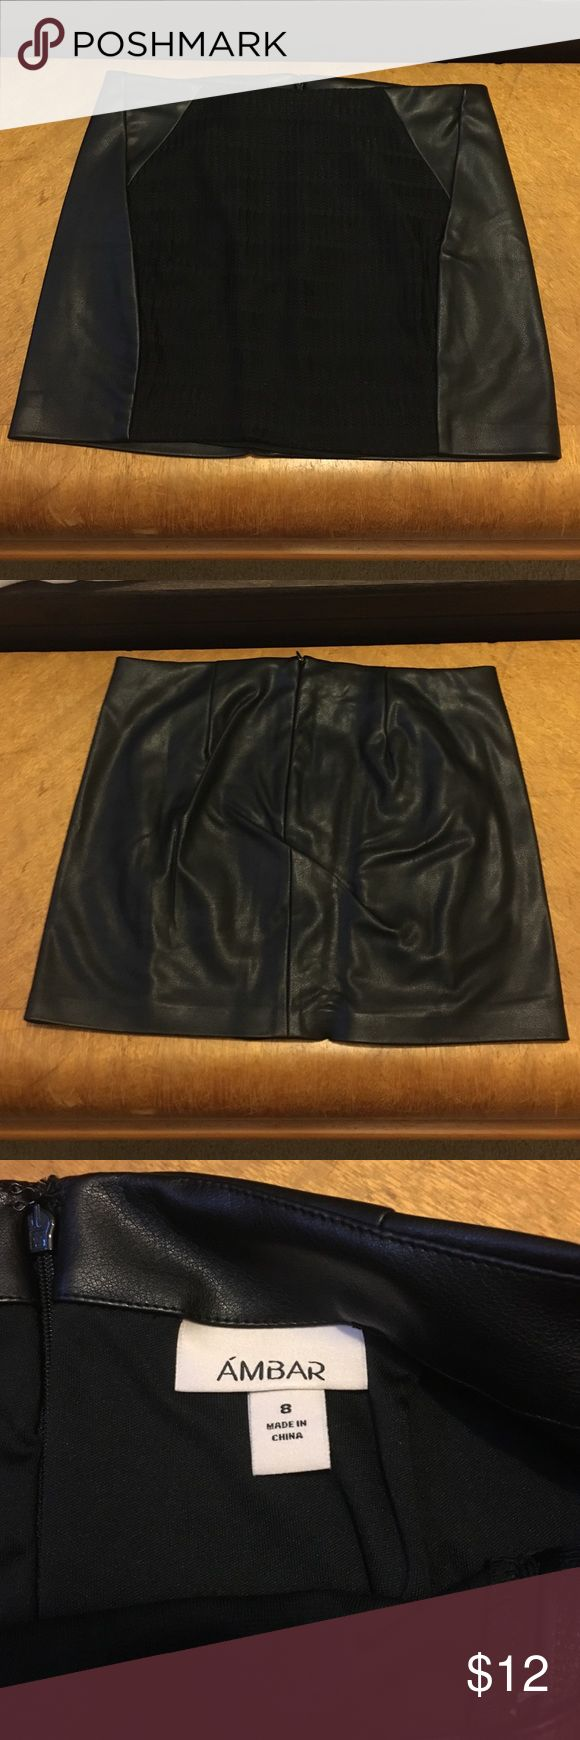 Black Mini Skirt Leather Look This mini skirt has a leather look to it a liner on the inside and a fabric front with a zipper back size 8 Ambar Ambar Skirts Mini